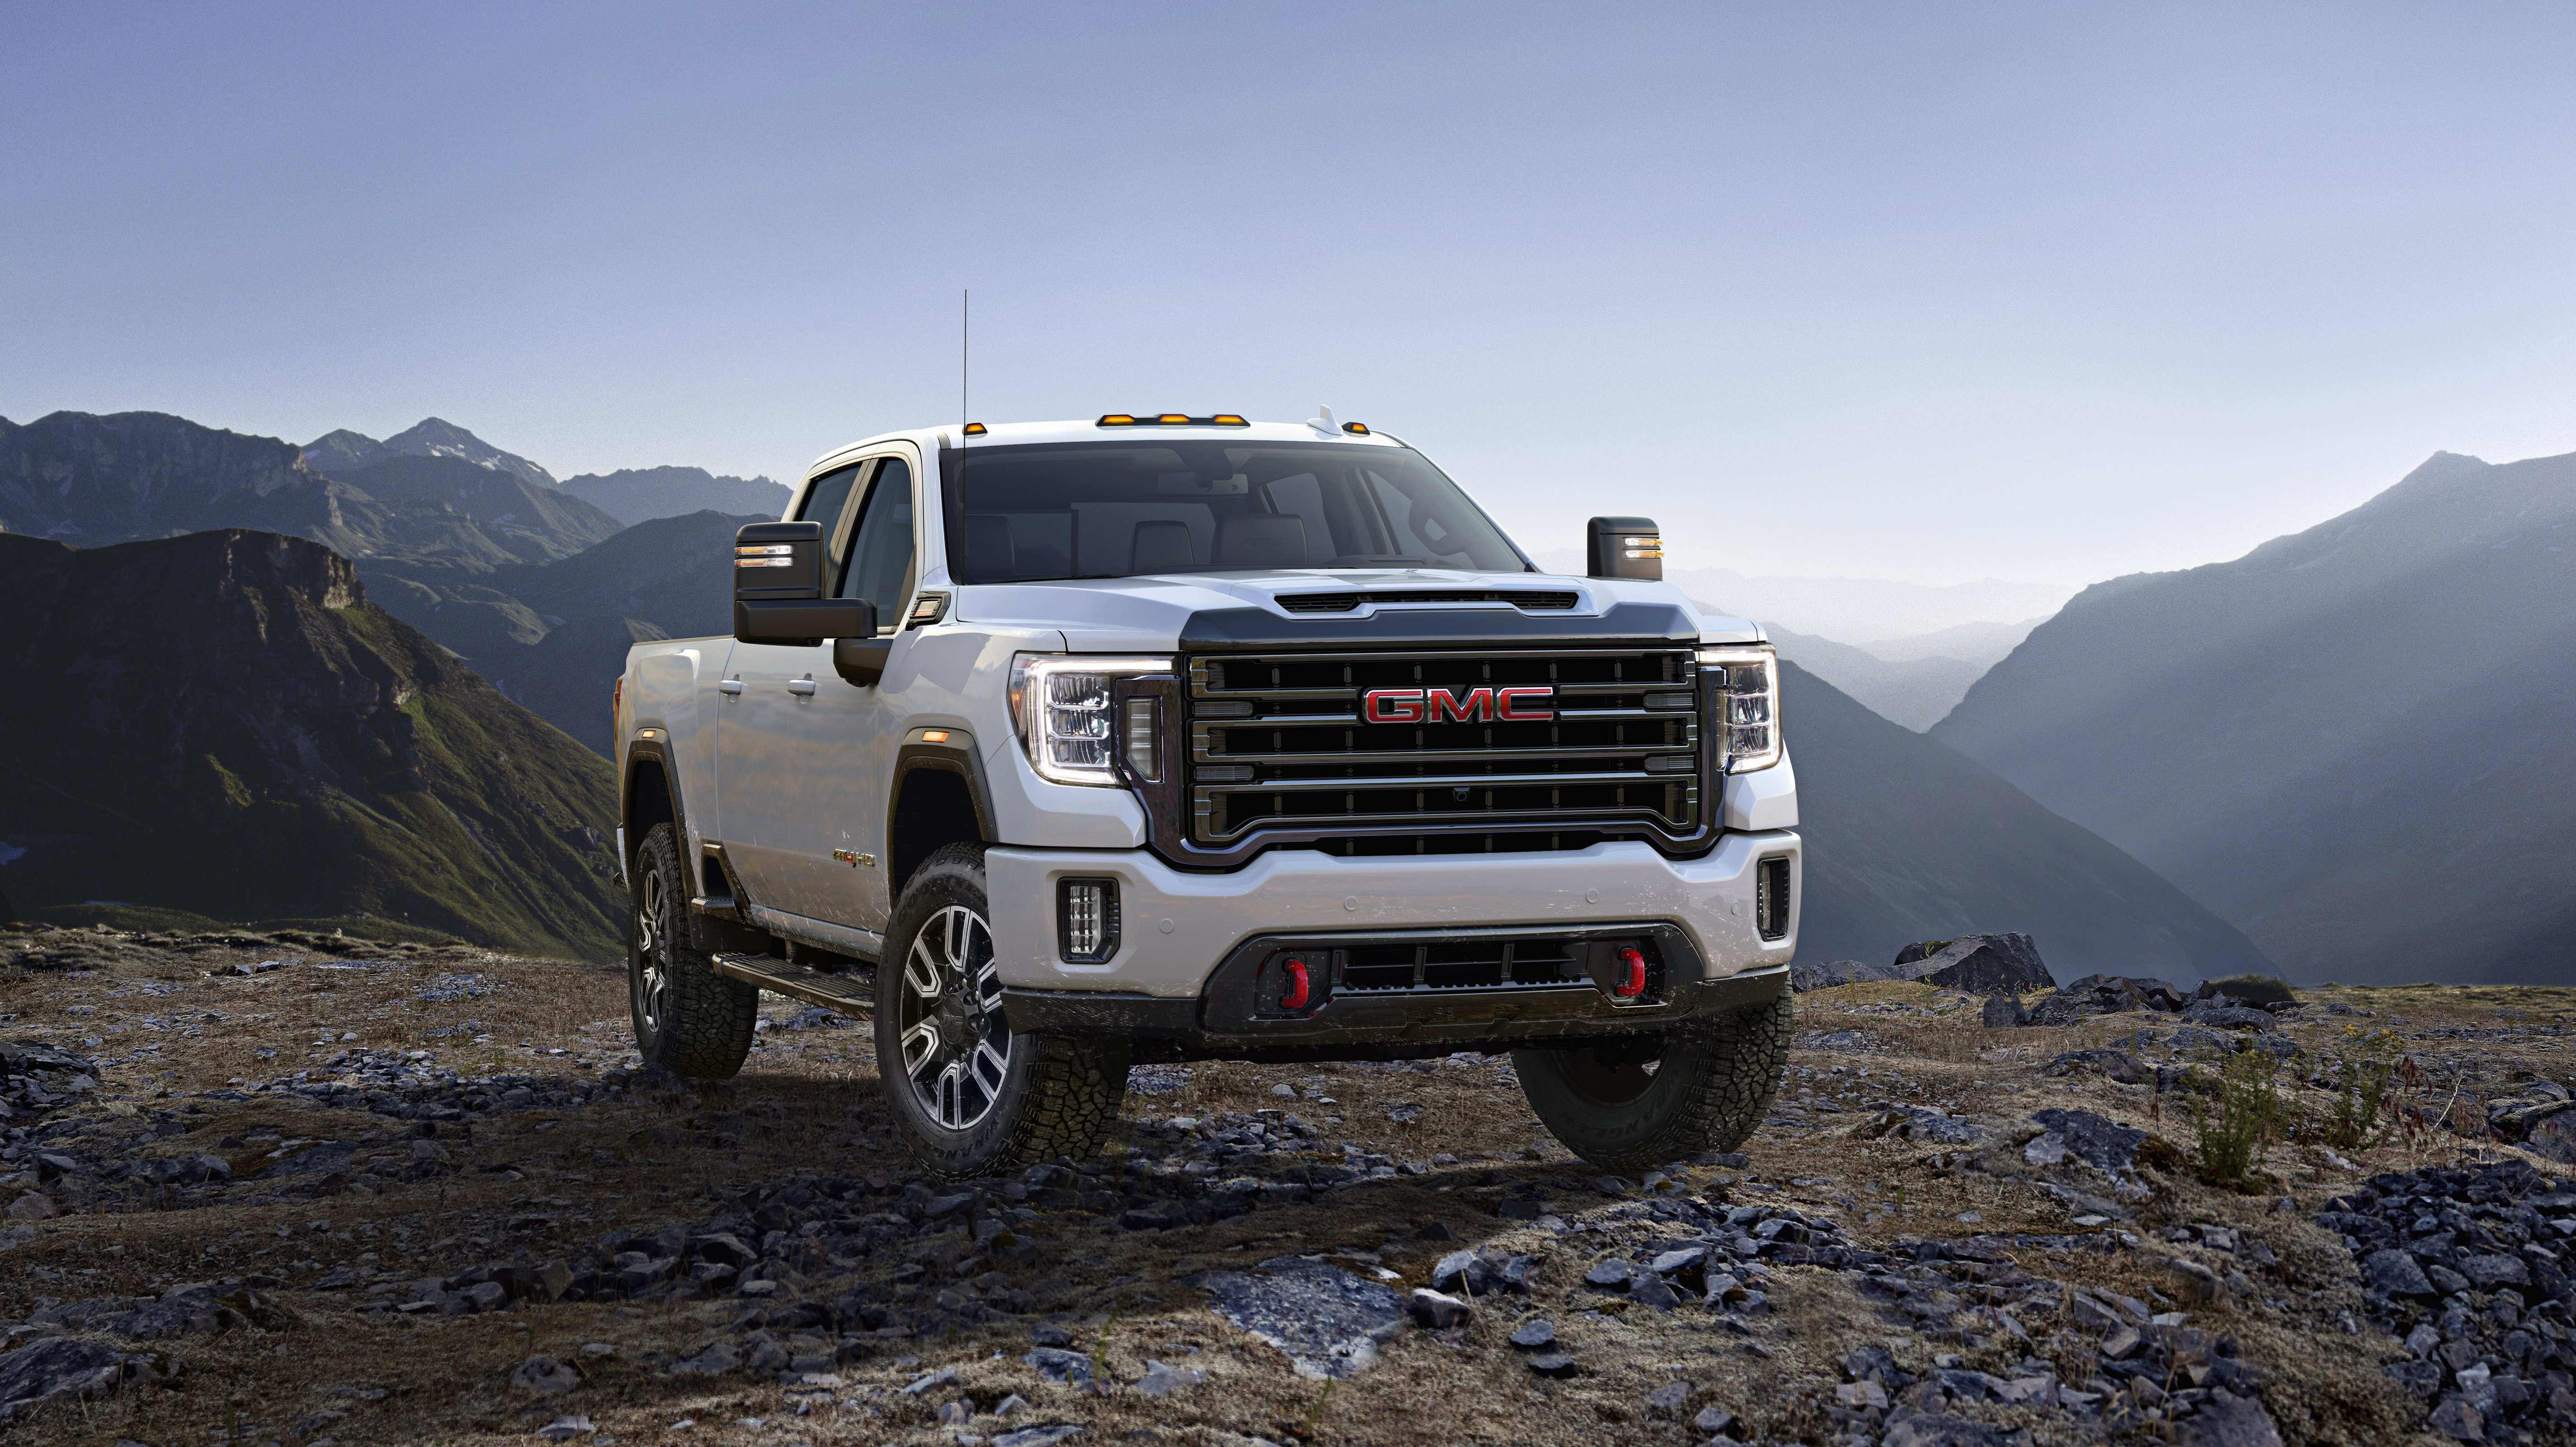 72 New 2020 GMC Sierra Hd At4 Engine